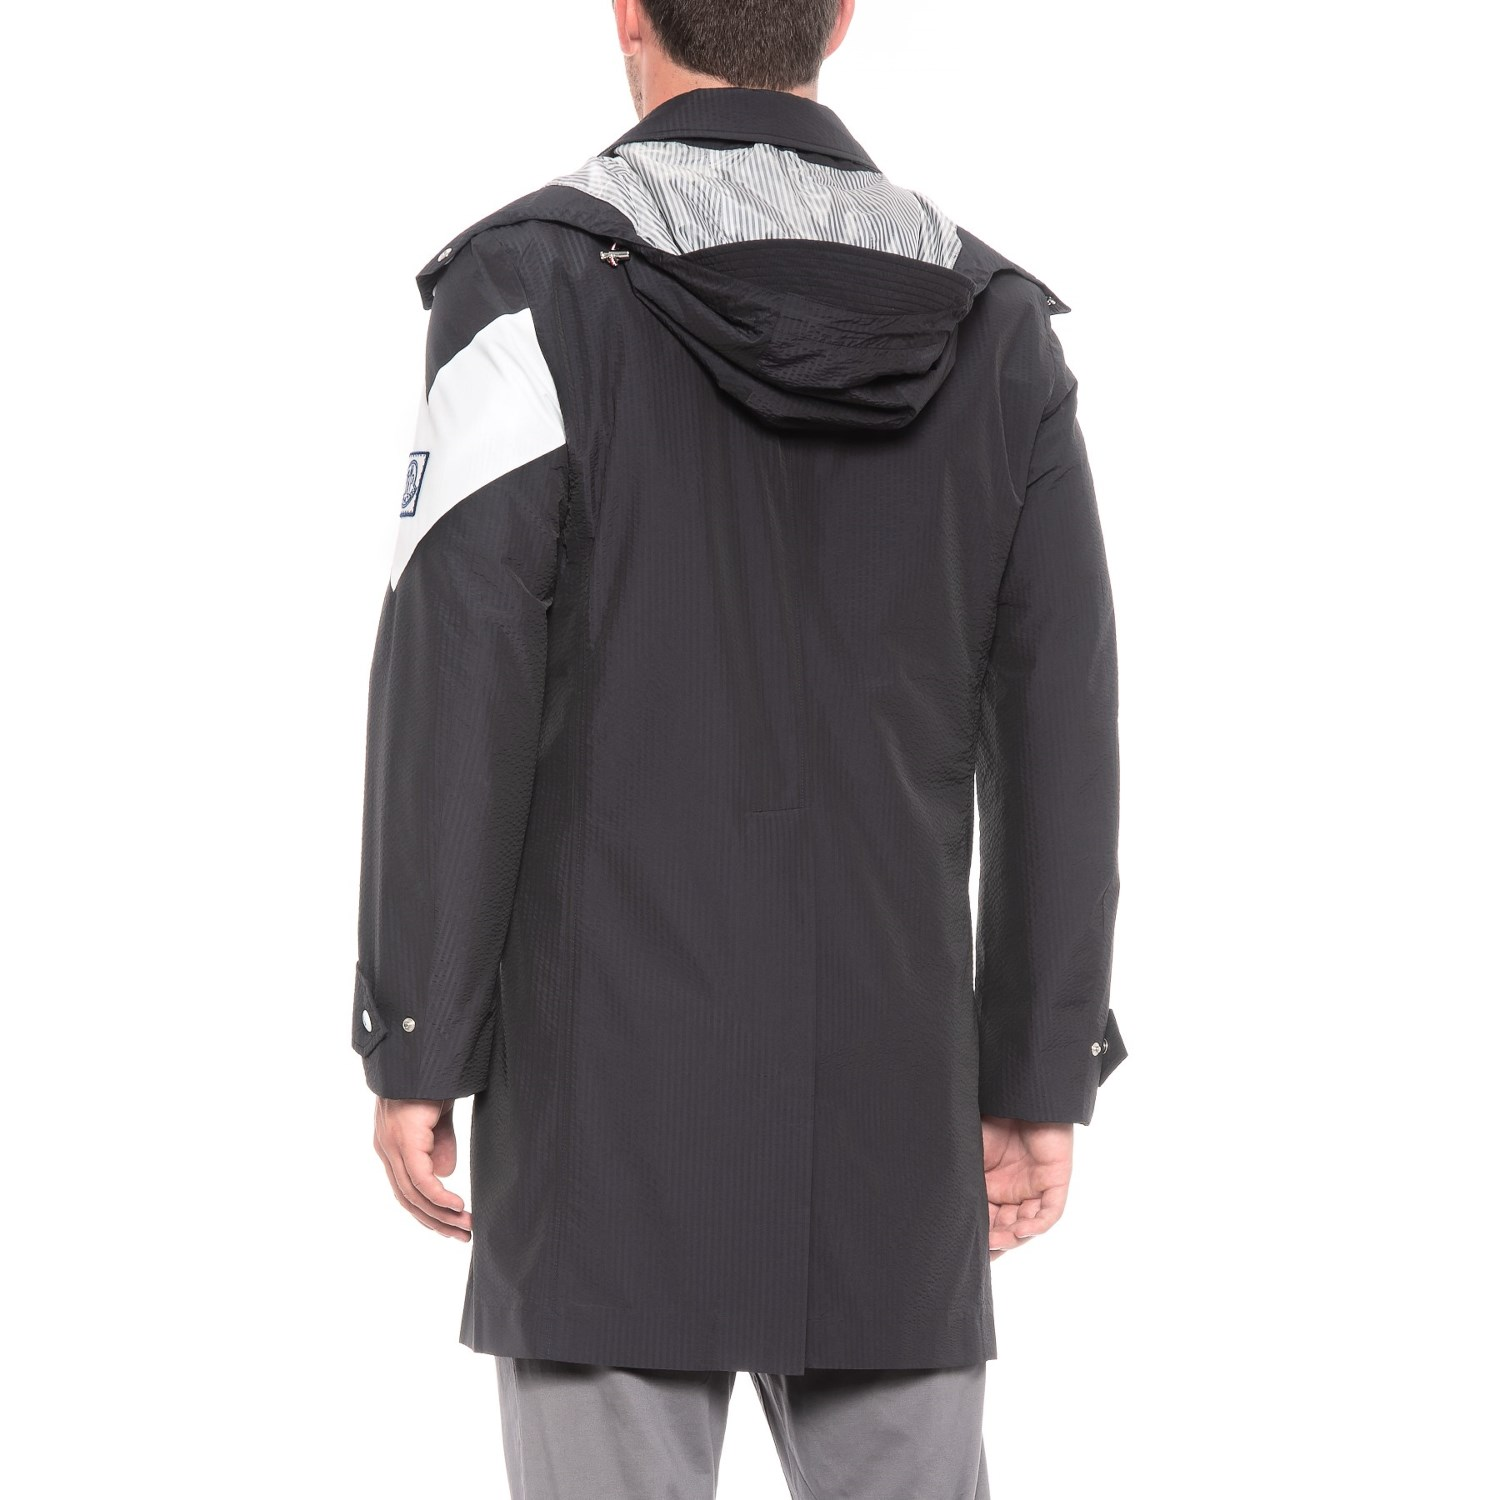 Moncler Gamme Bleu Long Jacket (For Men)